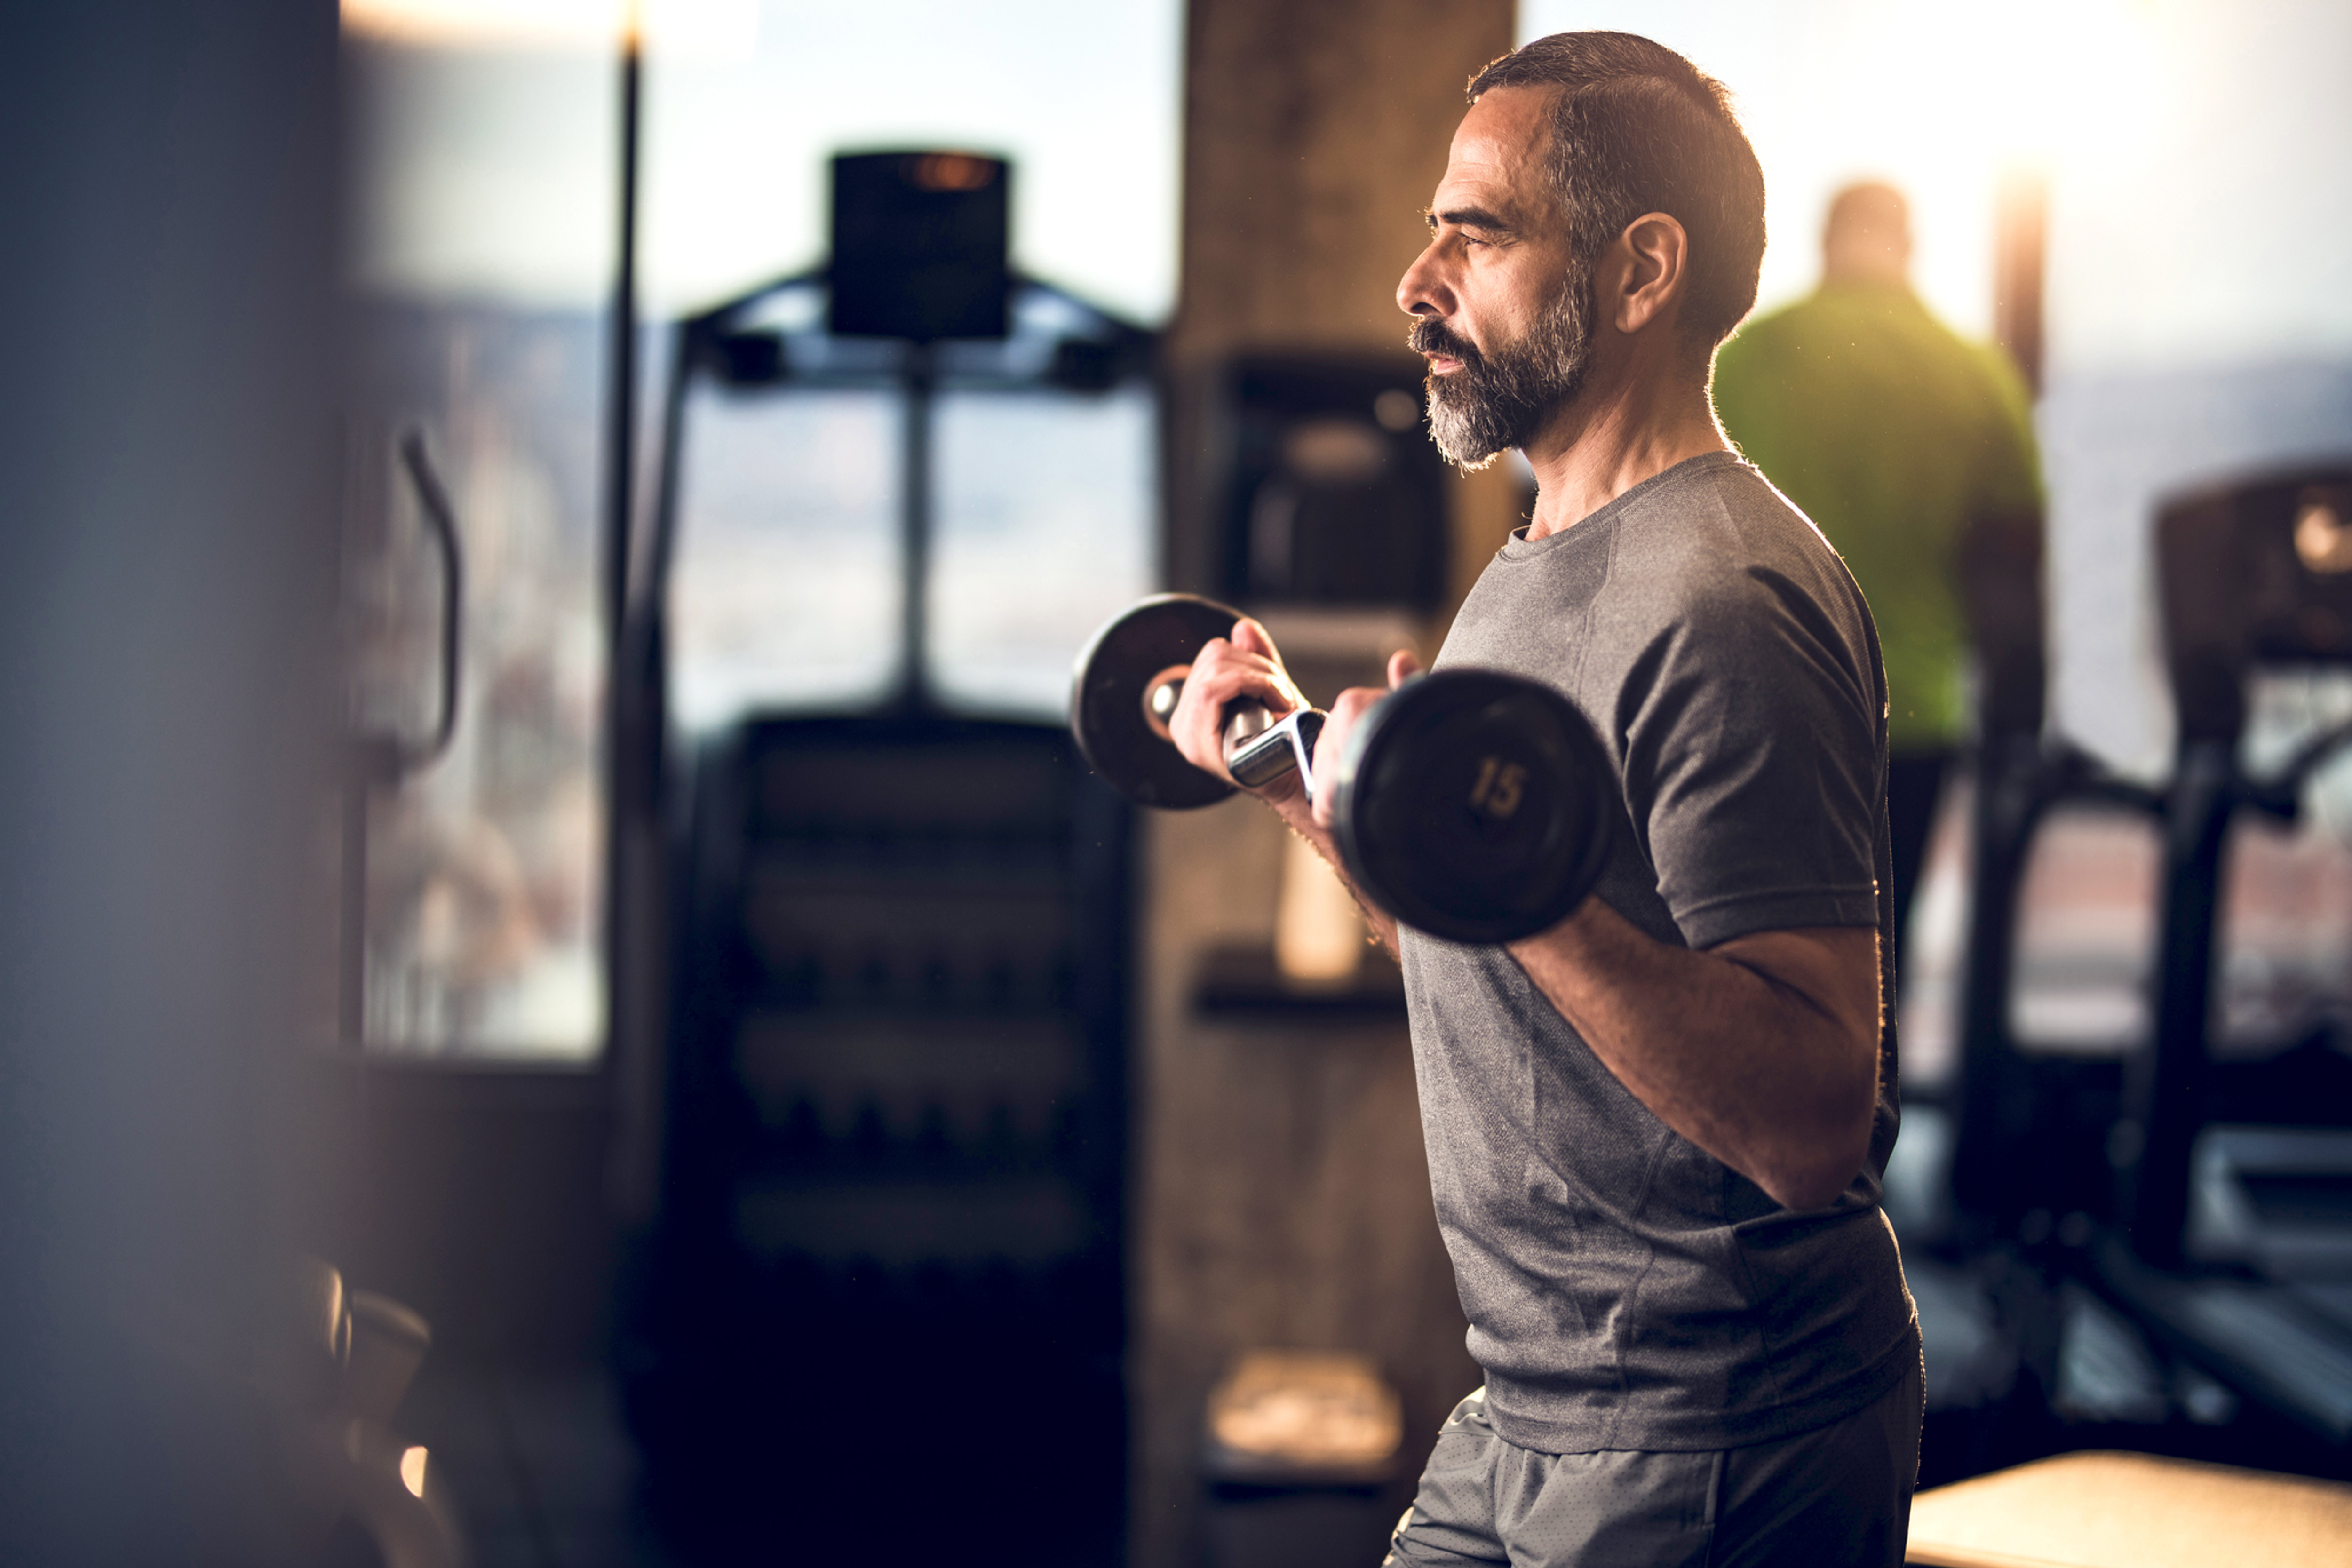 45 Minute Personal Training Session